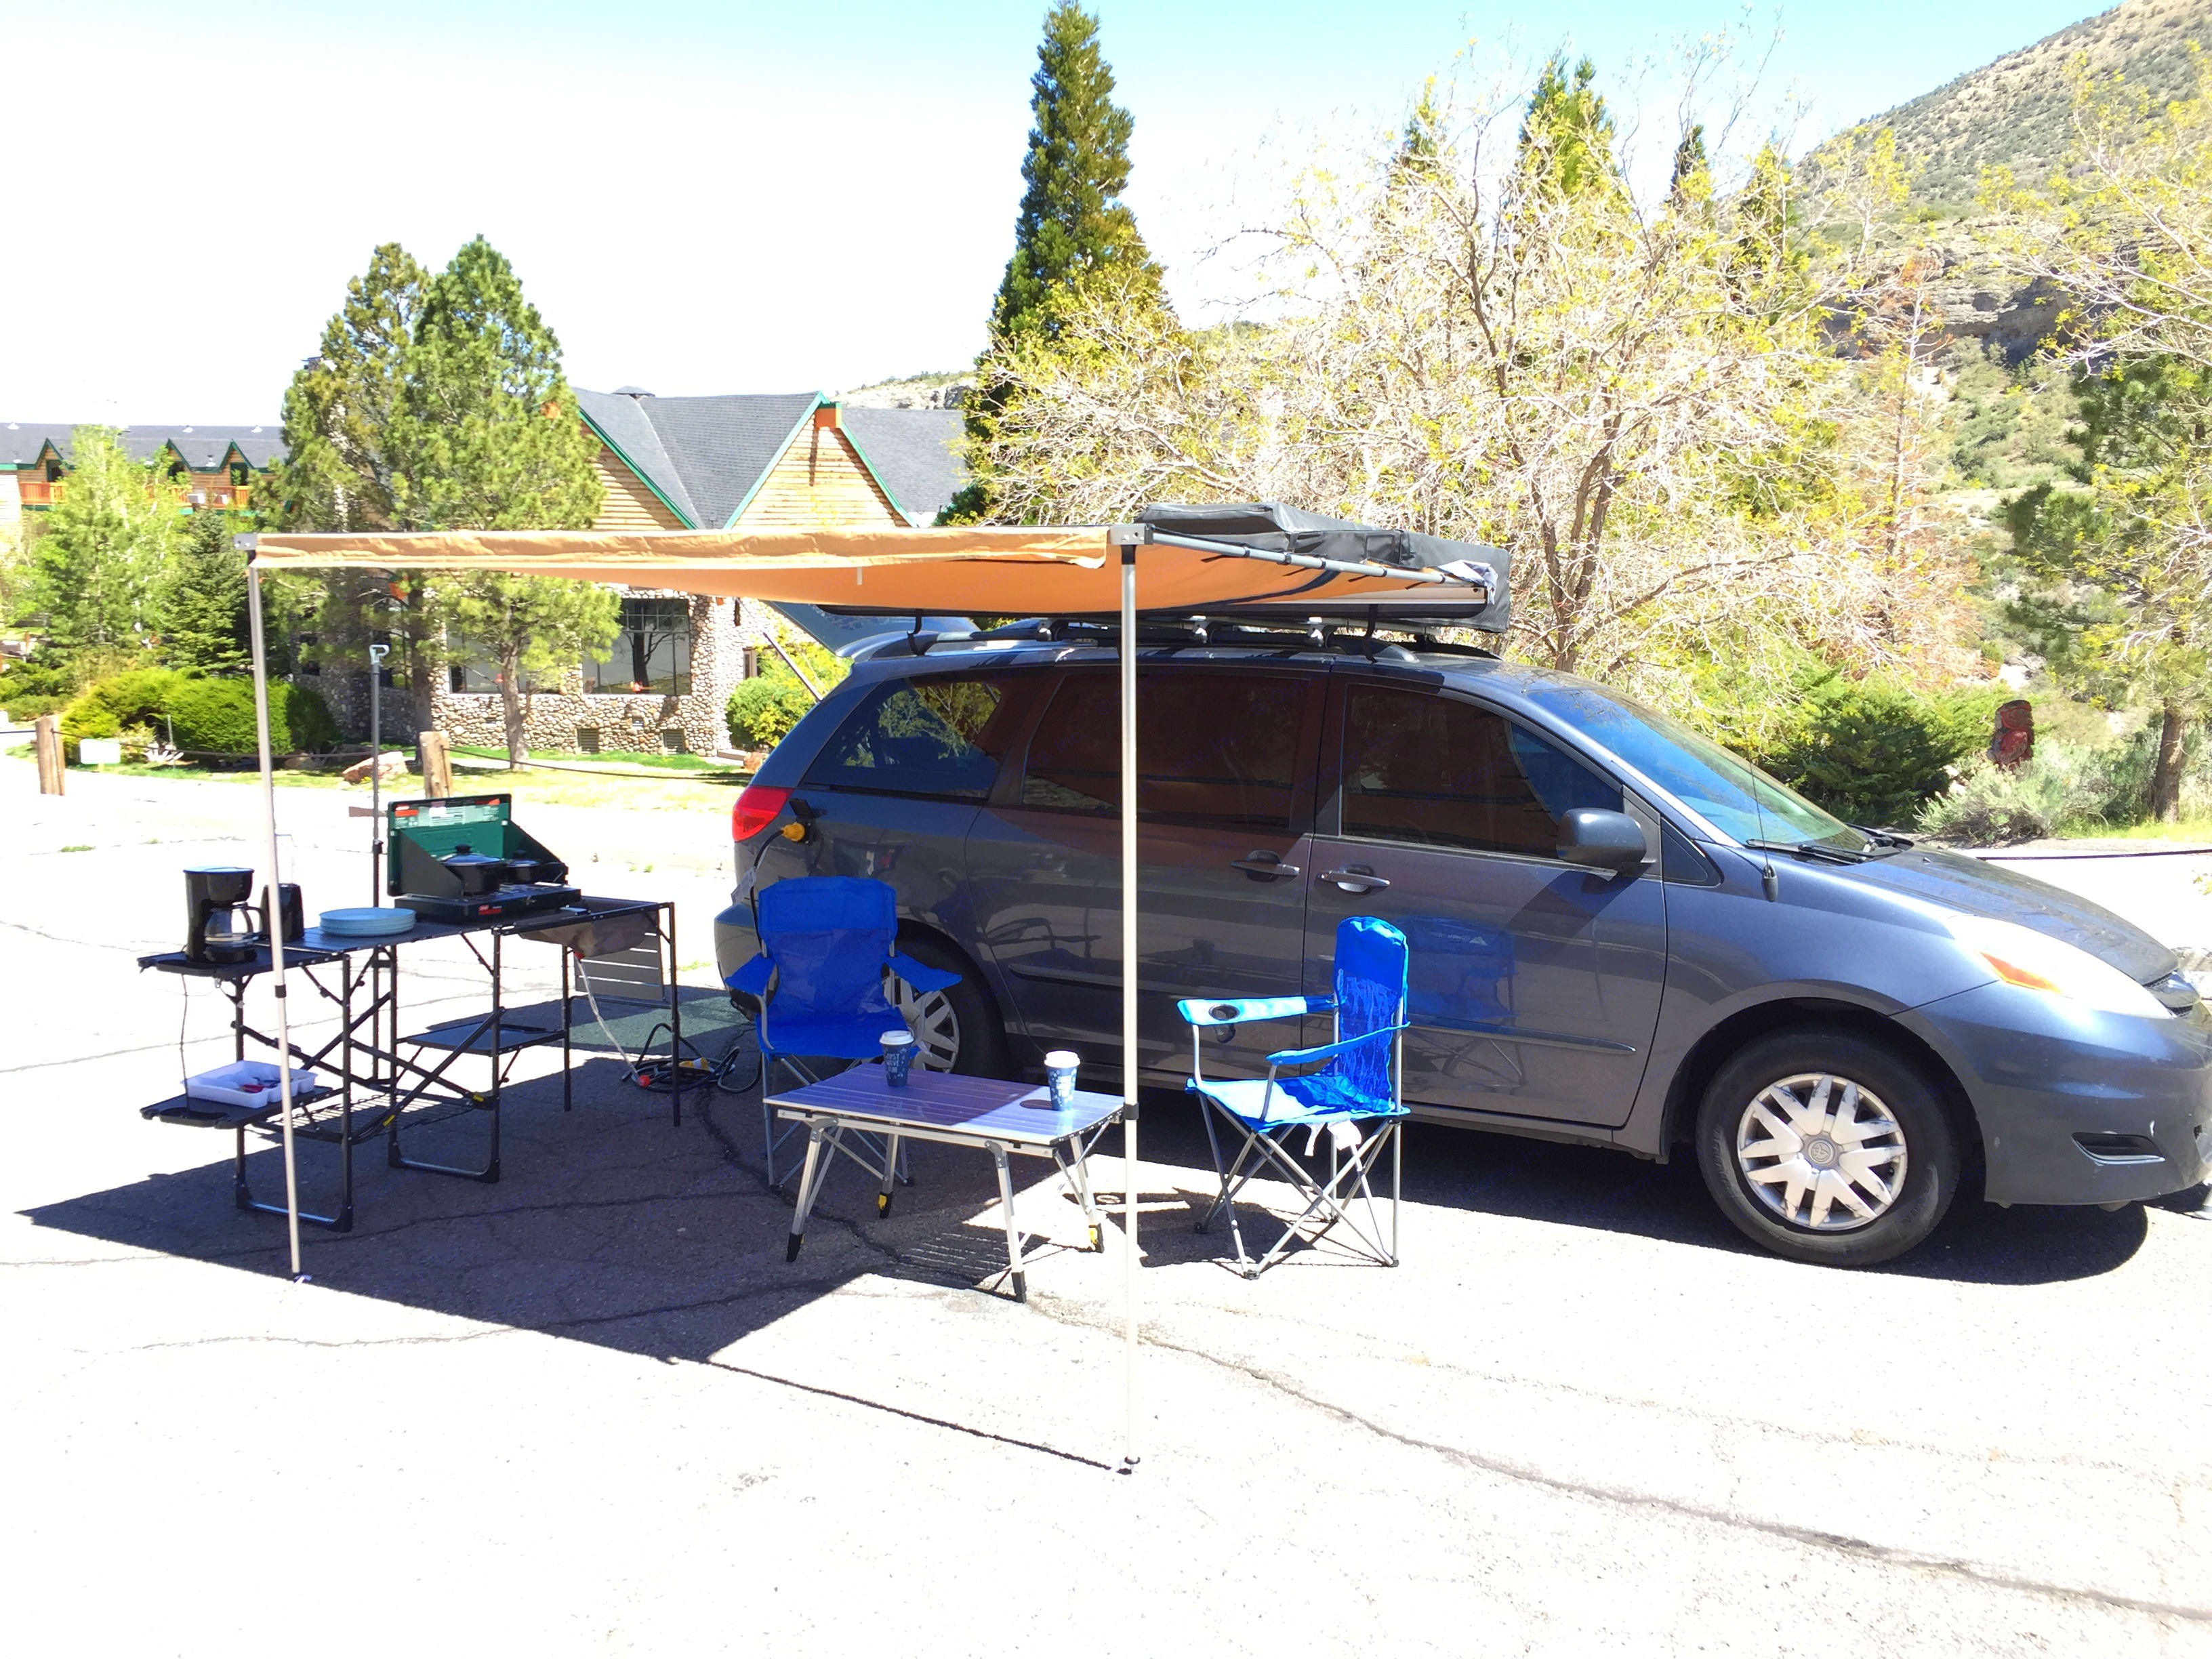 Awning fully deployed.. Toyota Sienna 2008